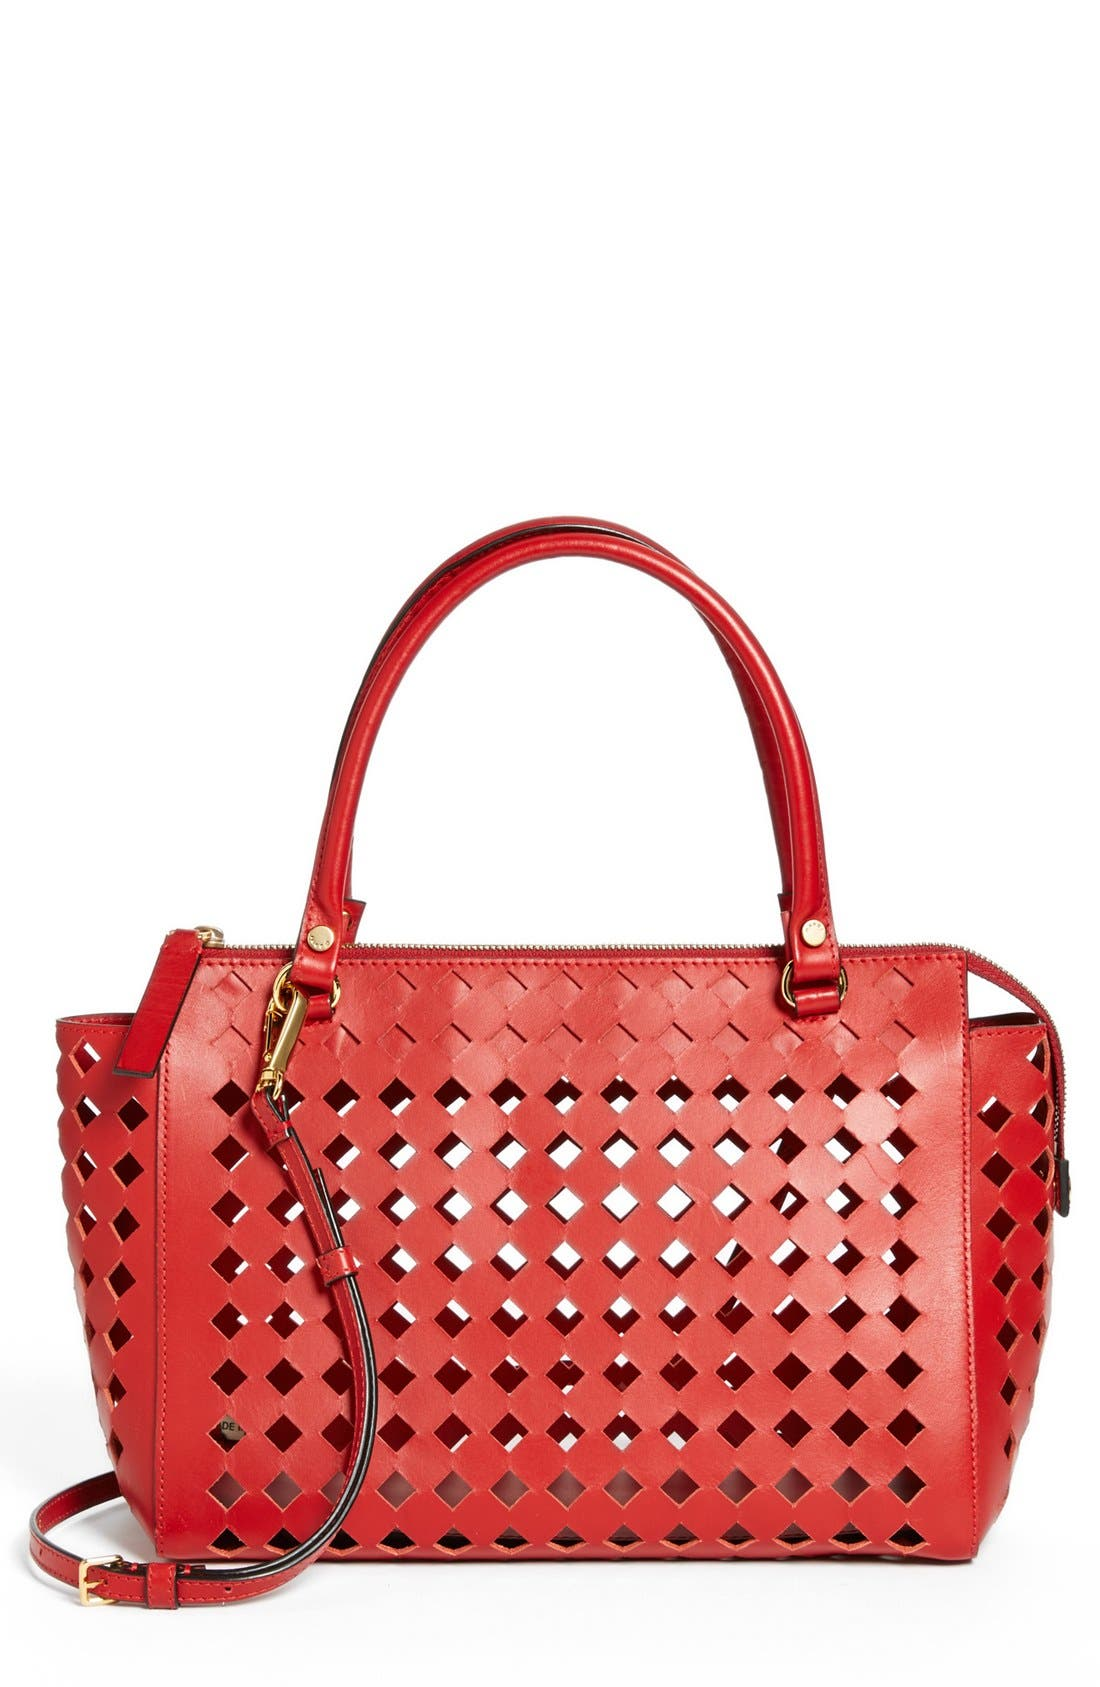 Alternate Image 1 Selected - Marni Diamond Perforated Leather Crossbody Satchel